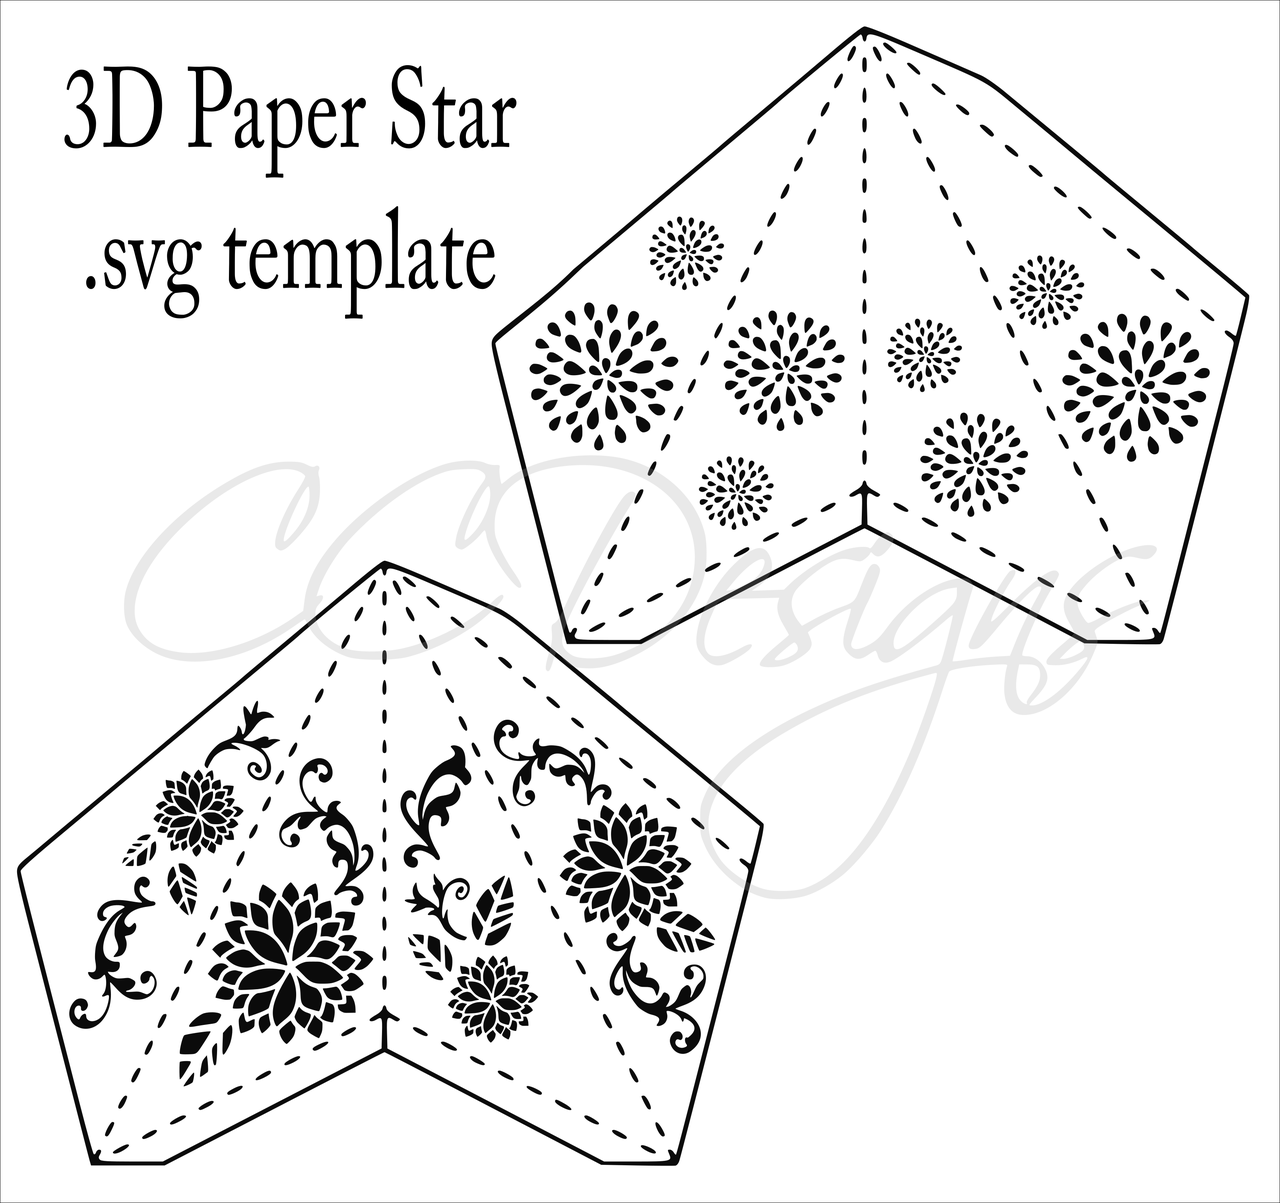 graphic about Star Printable Cutouts named 3D Paper Star Templates: Do-it-yourself Paper Star Craft SVG PDF Template